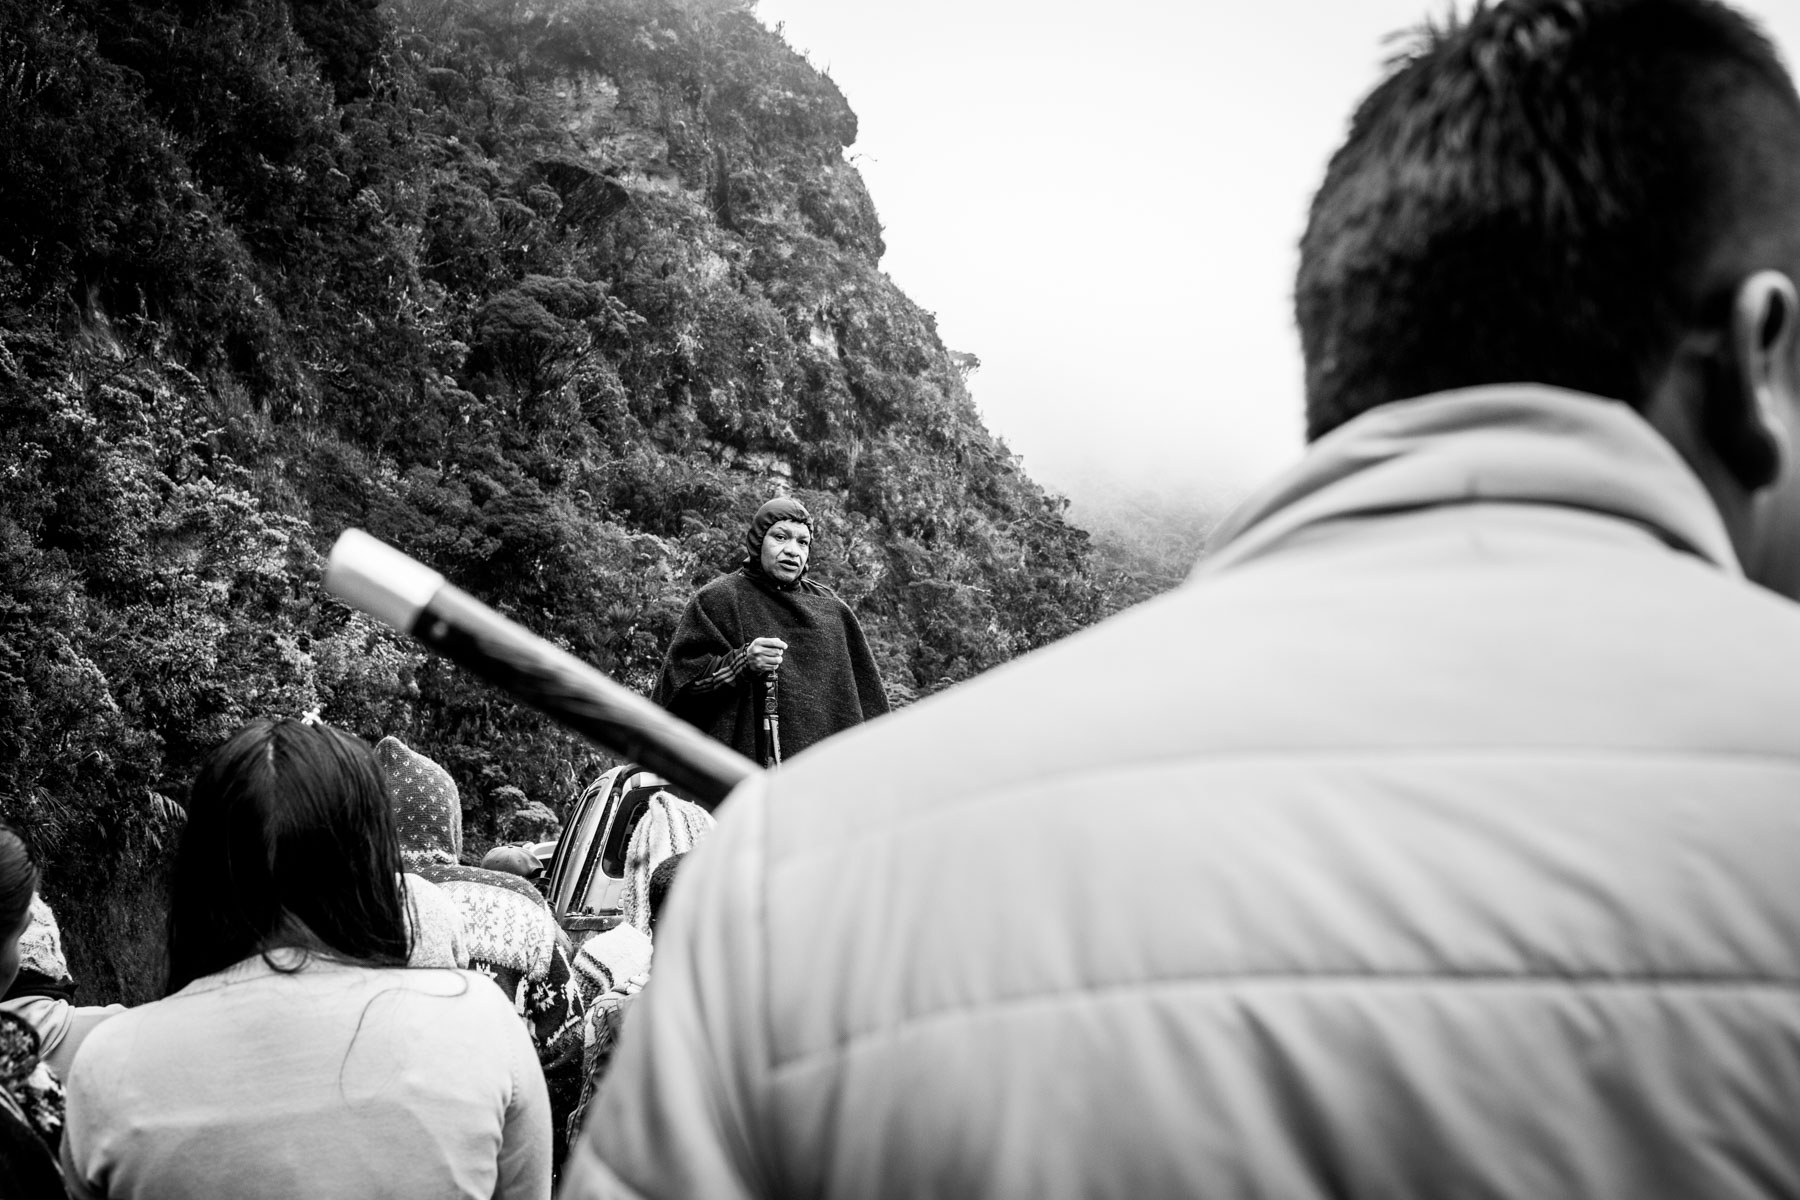 """Political leader from the Nasa indigenous reservation of Tacueyó speaks to the community in the Páramo de Pisnos after the celebration of the cleansing ritual of the 'Khabu fxizehnxi' ('Refreshing of the Batons""""), one of the five main rituals of the Nasa indigenous people of the Cauca region in Colombia. The leader warns the community about the  threats and murders that are increasing exponentially within the territory. Cauca region, Colombia, January 2019."""